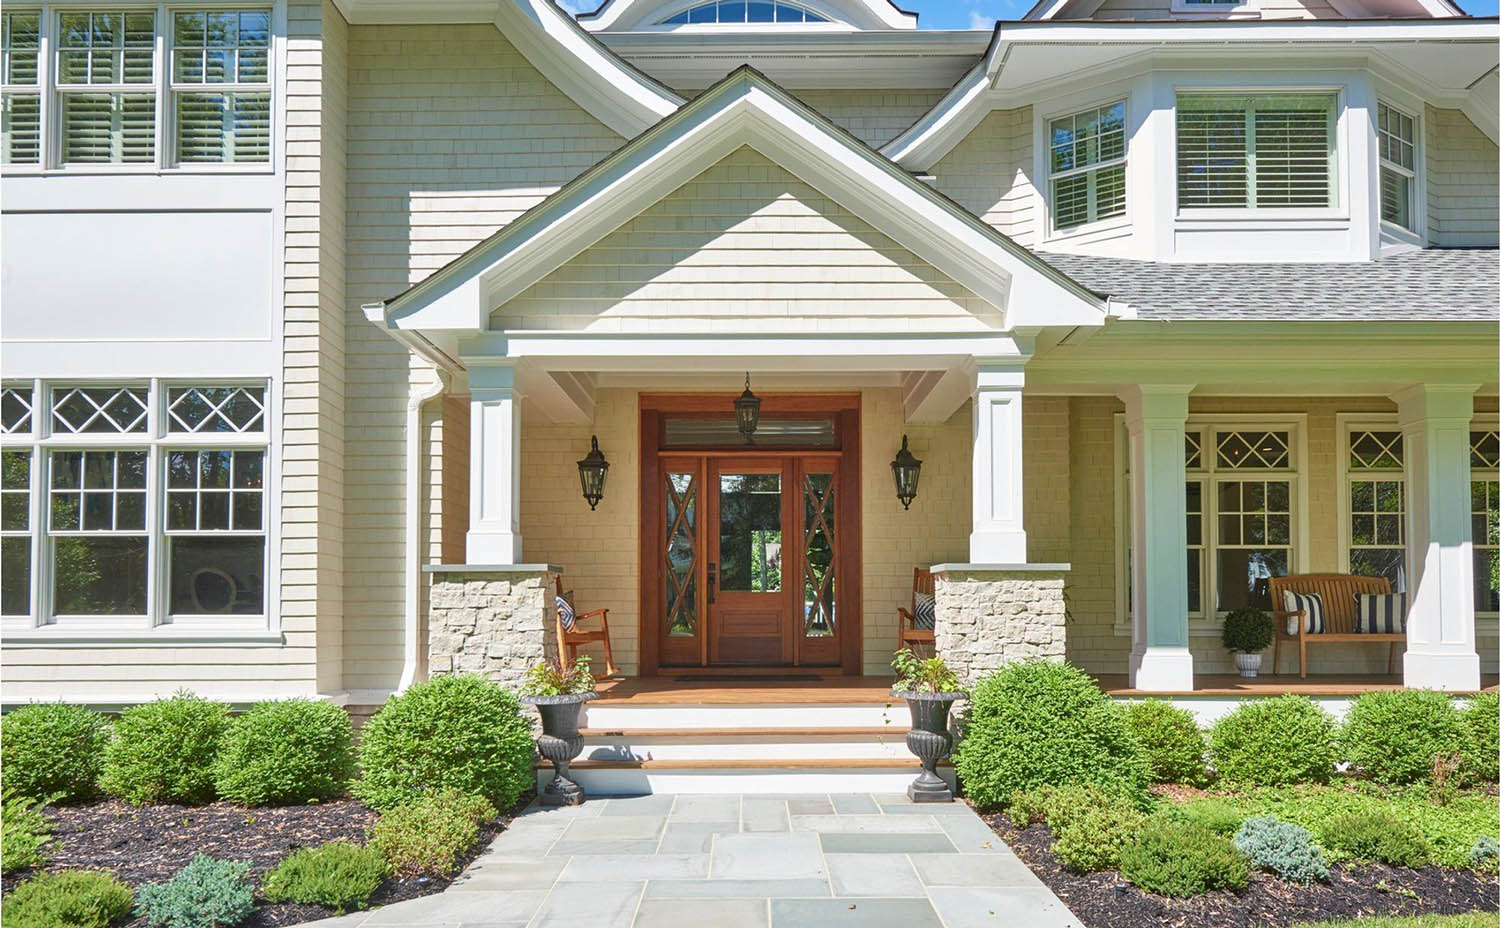 Neutral house siding colors. Light tan with a brown stained wood front door. Light gray stone veneer. White trim. White columns. Blue stone walkway.